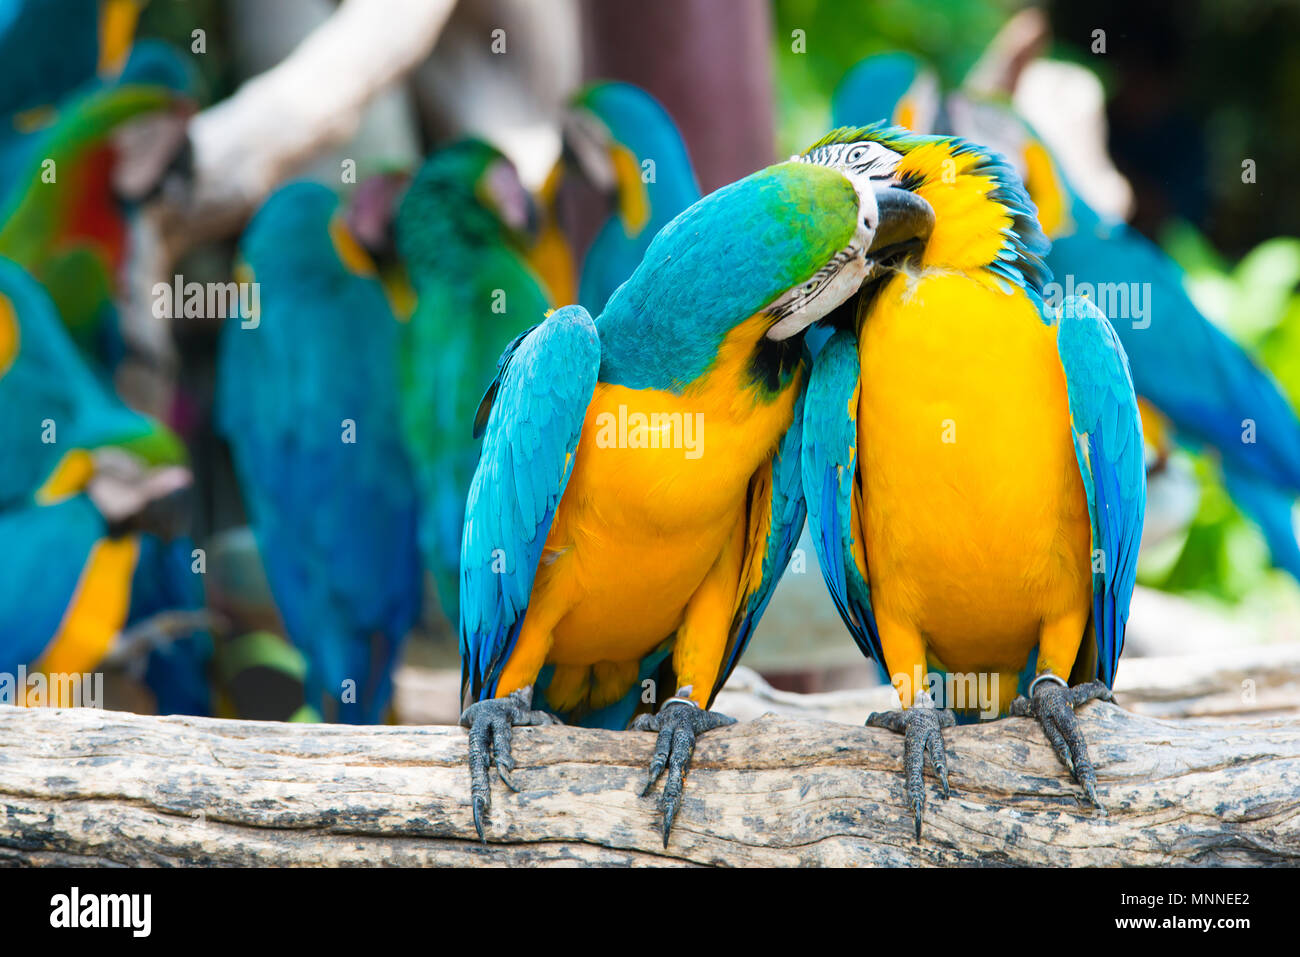 A pair of blue-and-yellow macaws perching at wood branch in jungle. Colorful macaw birds in forest. - Stock Image